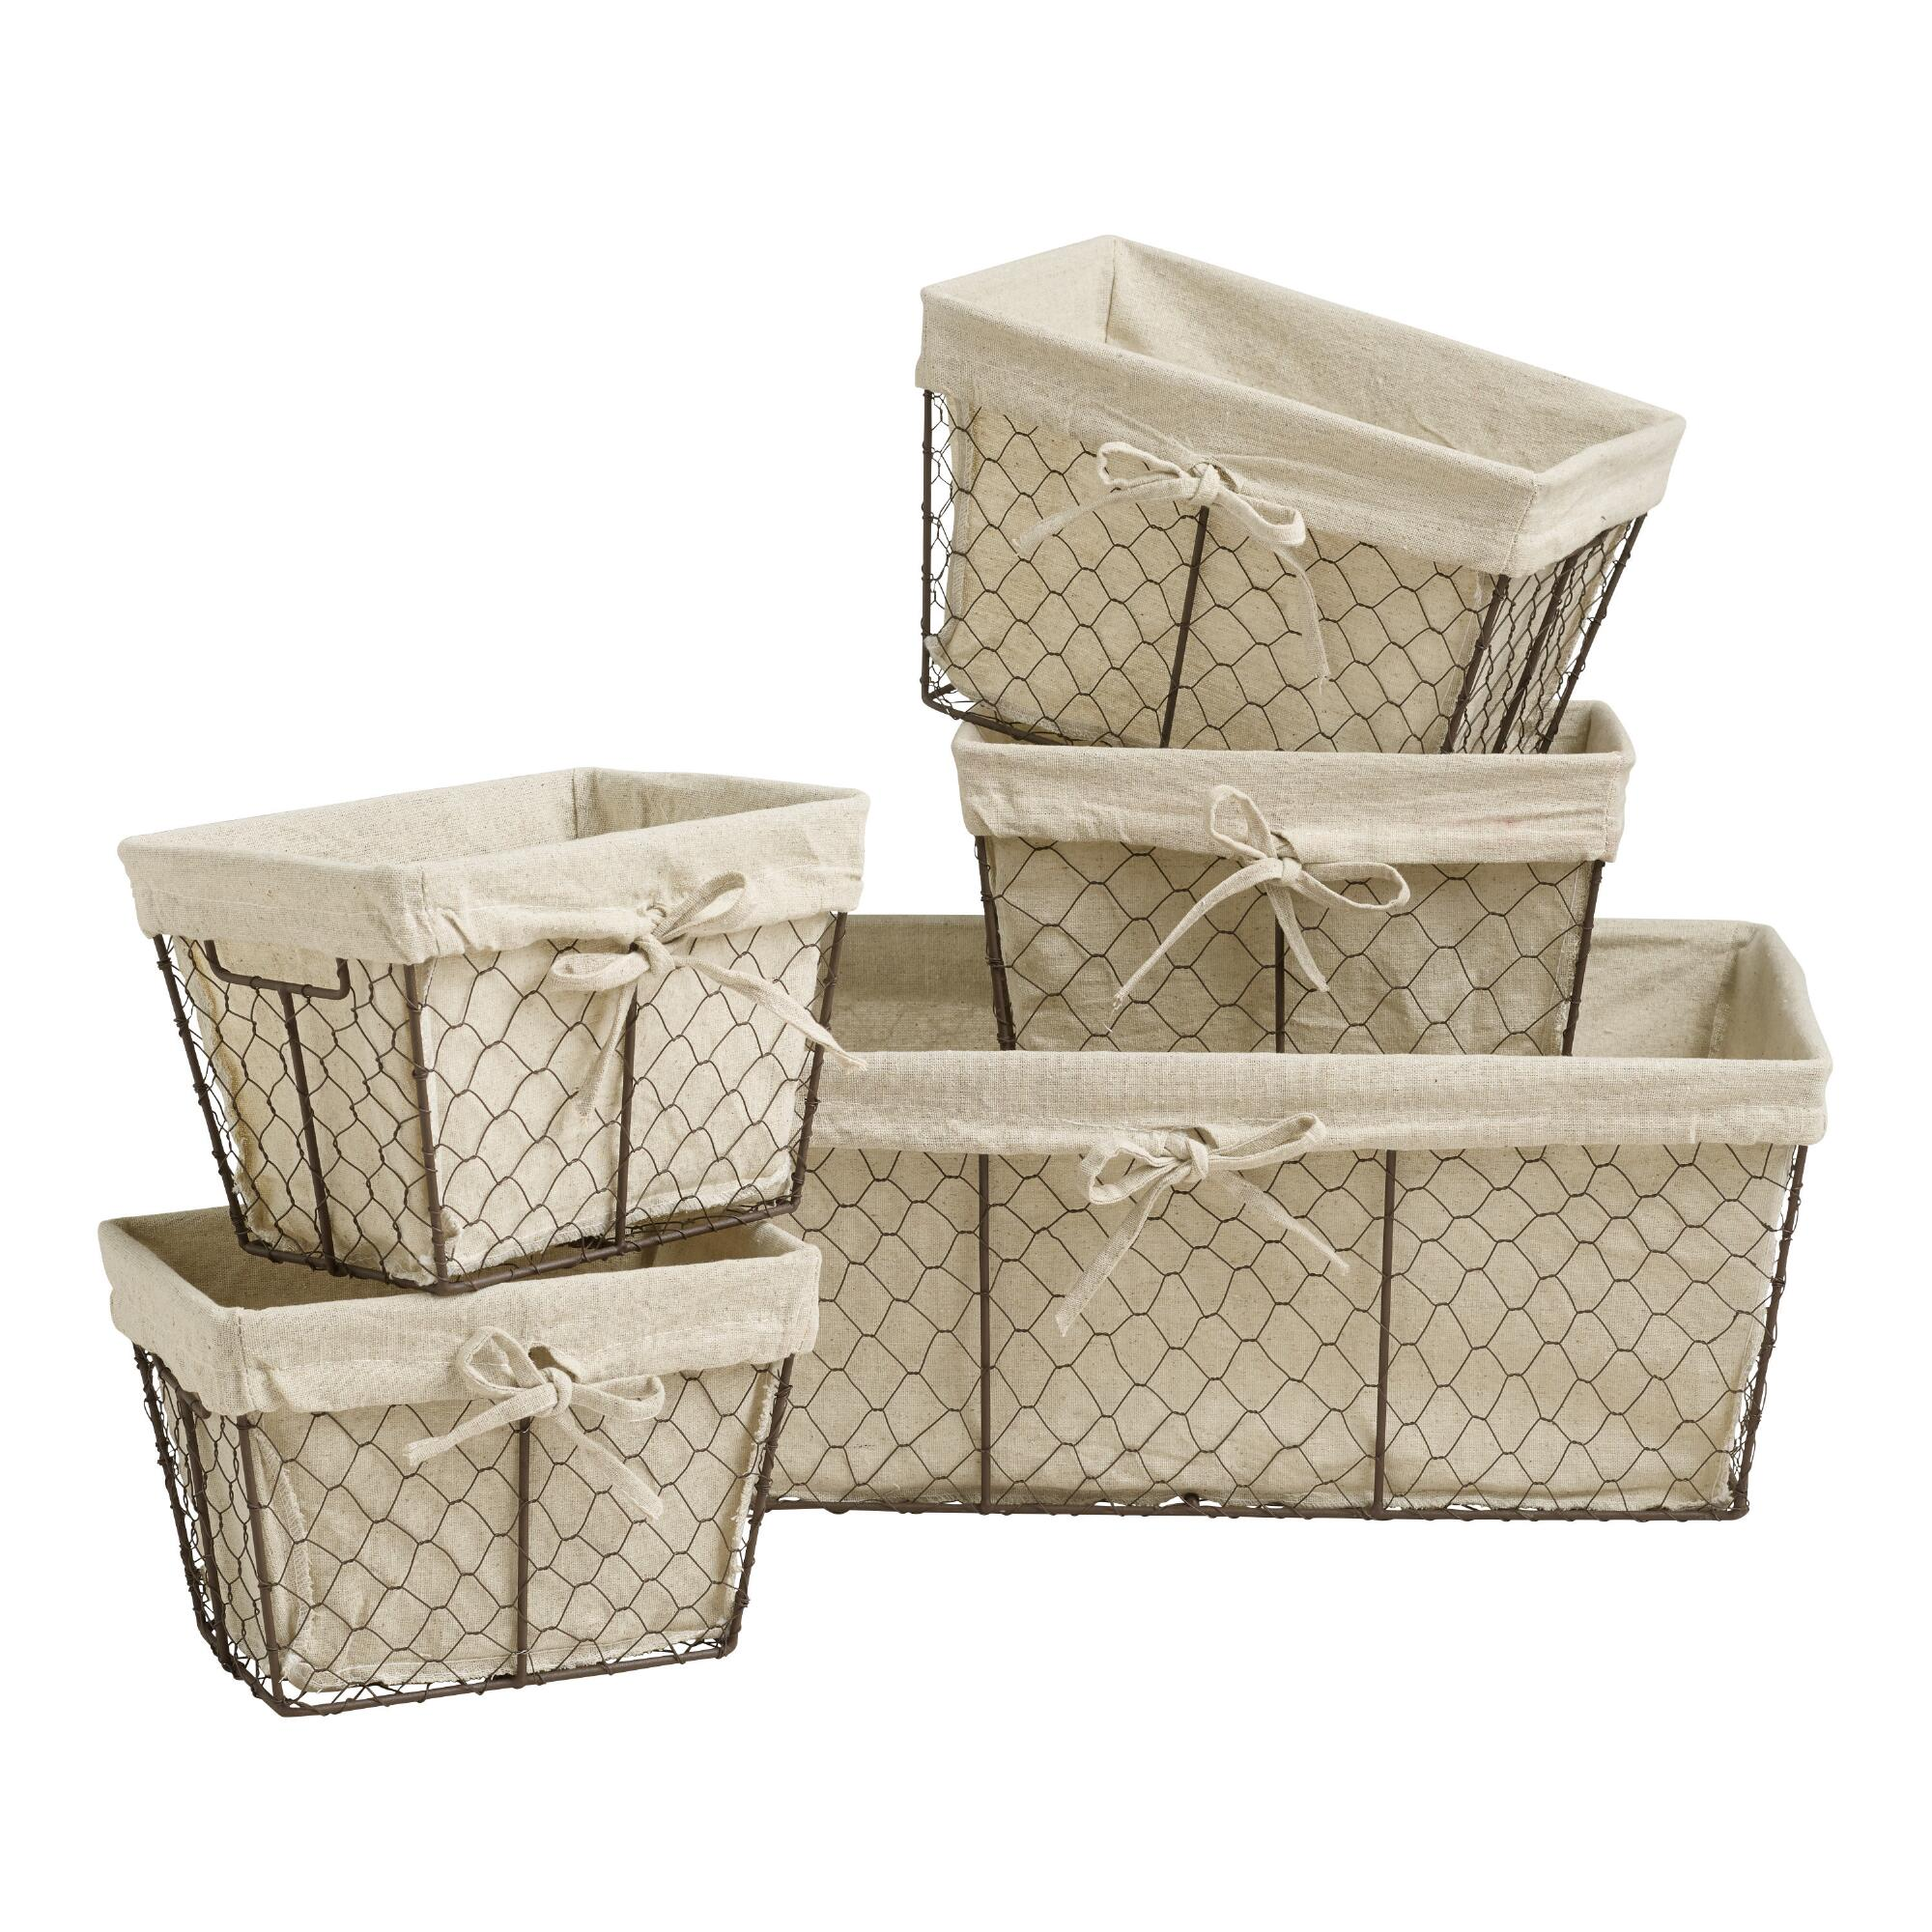 Home shop storage cabinets md stationary mesh security cabinet with - Charlotte Lined Wire Baskets